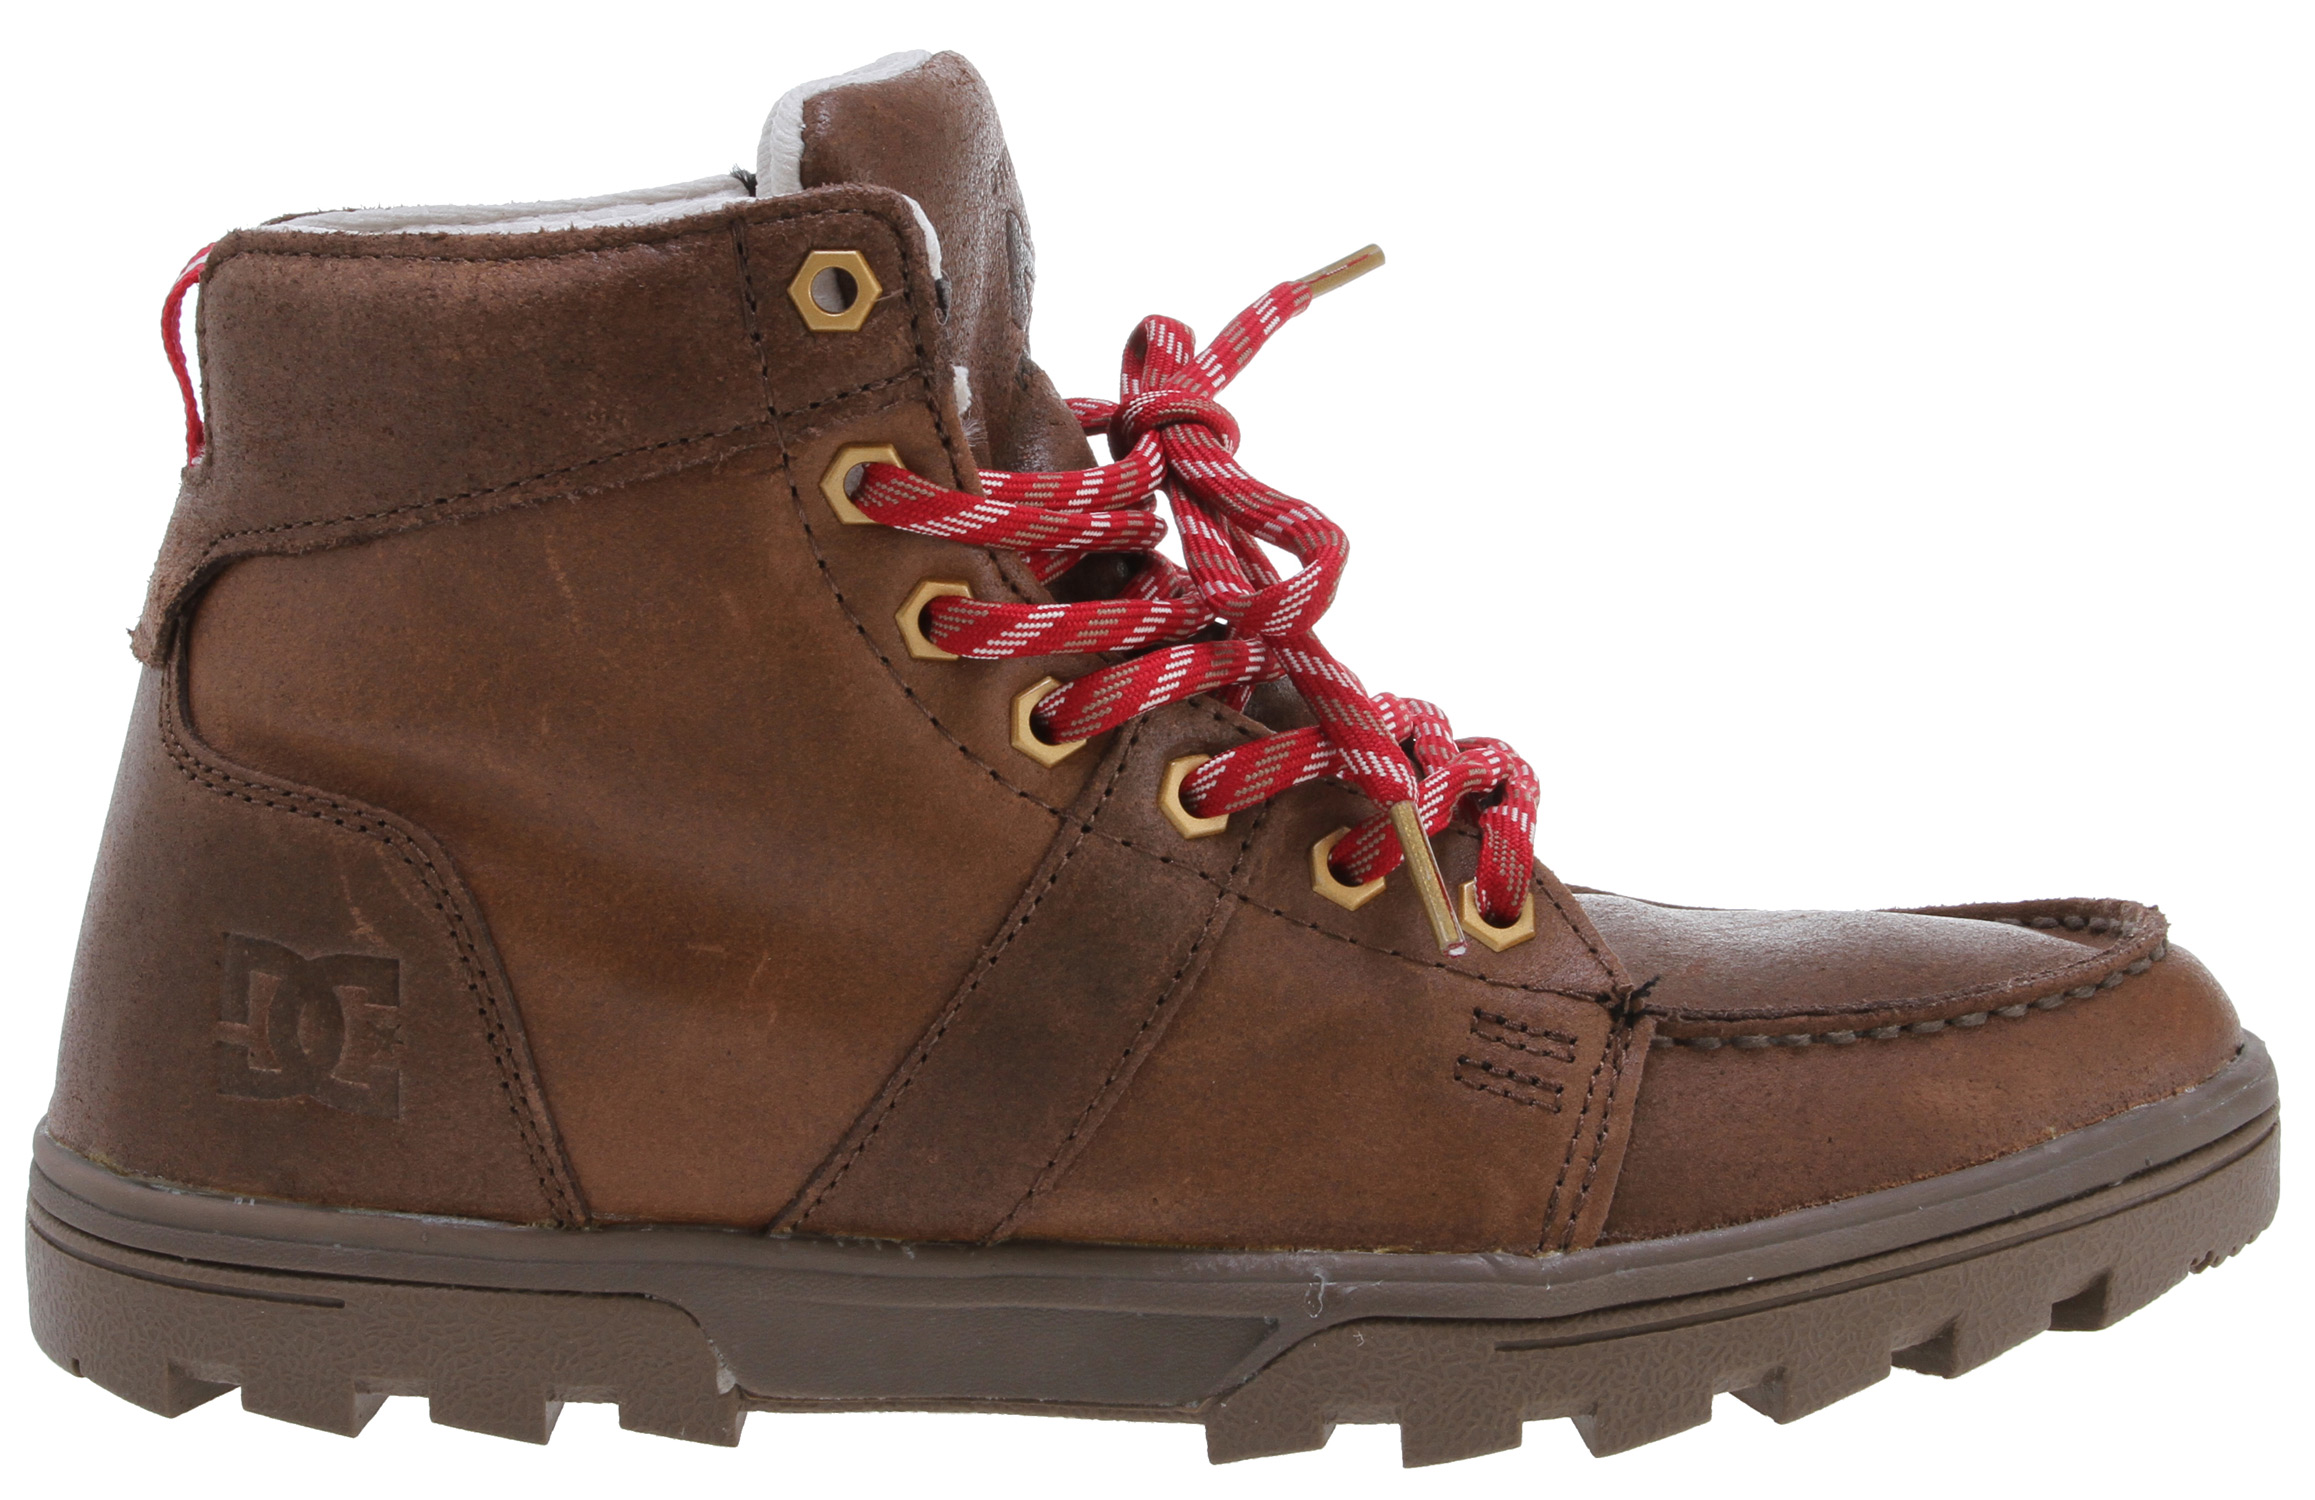 "The rugged Woodland brings premium materials to a casual boot. It features a full premium suede upper, as well as custom Allen key head lace eyelets. The lining is 100% poly, while the tongue and heel collar are foam padded for comfort and support; additionally, a gusset on the tongue helps keep out water. Key Features of the DC Woodland DW Boots: Custom 100% Poly Lining With DC's Trademarked ""Pill Pattern"" Full Premium Suede Upper Custom Allen Key Head Eyelets Foam Padded Tongue And Collar For Added Comfort And Support Tongue Gusset To Keep The Water Out Performalite Polyurethane Midsole And A Rugged All-Terrain Rubber Outsole - $82.95"